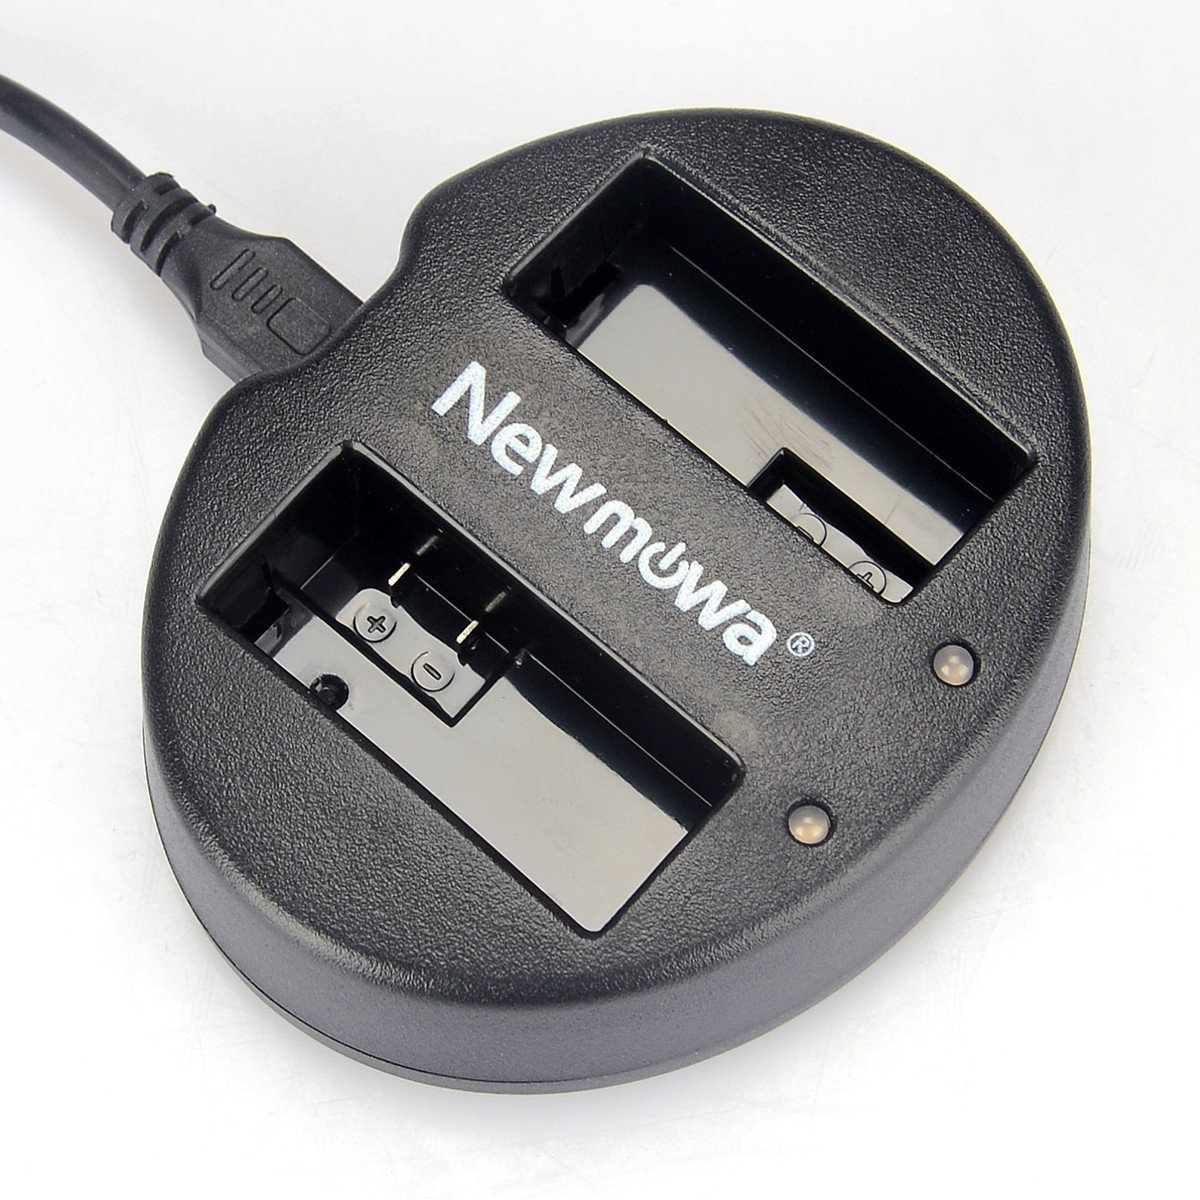 Newmowa Dual USB Charger for Canon LP-E8 and Canon EOS 550D, EOS 600D, EOS Rebel T2i, EOS Rebel T3i, EOS Rebel T4i, EOS Rebel T5i